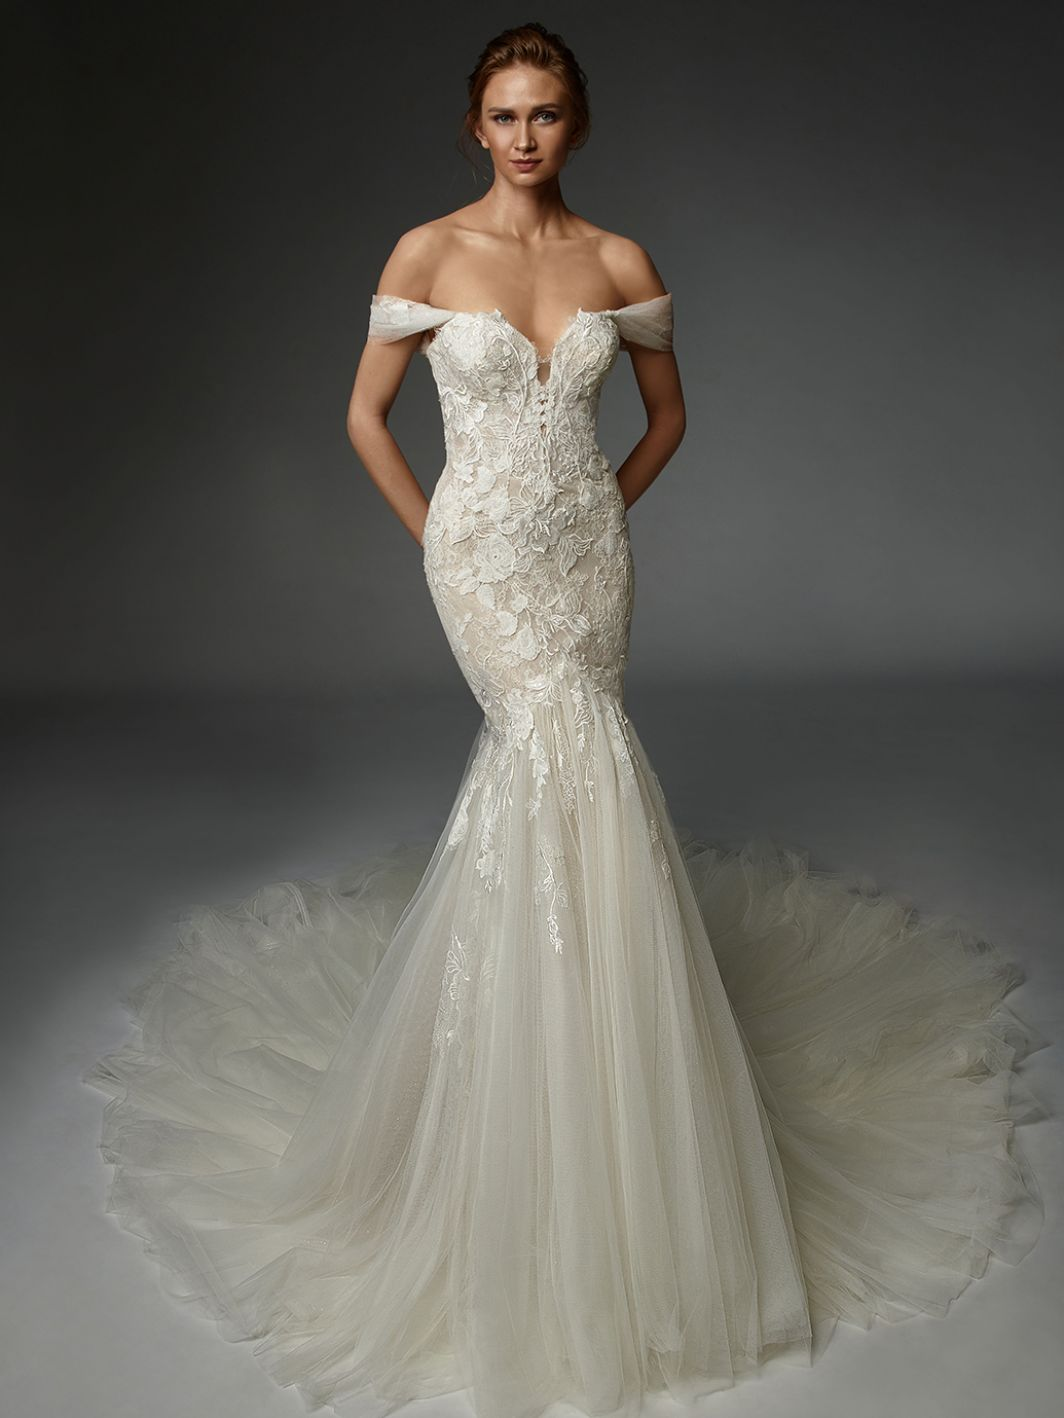 Adélaïde - New, Gown, Élysée by Enzoani - Eternal Bridal